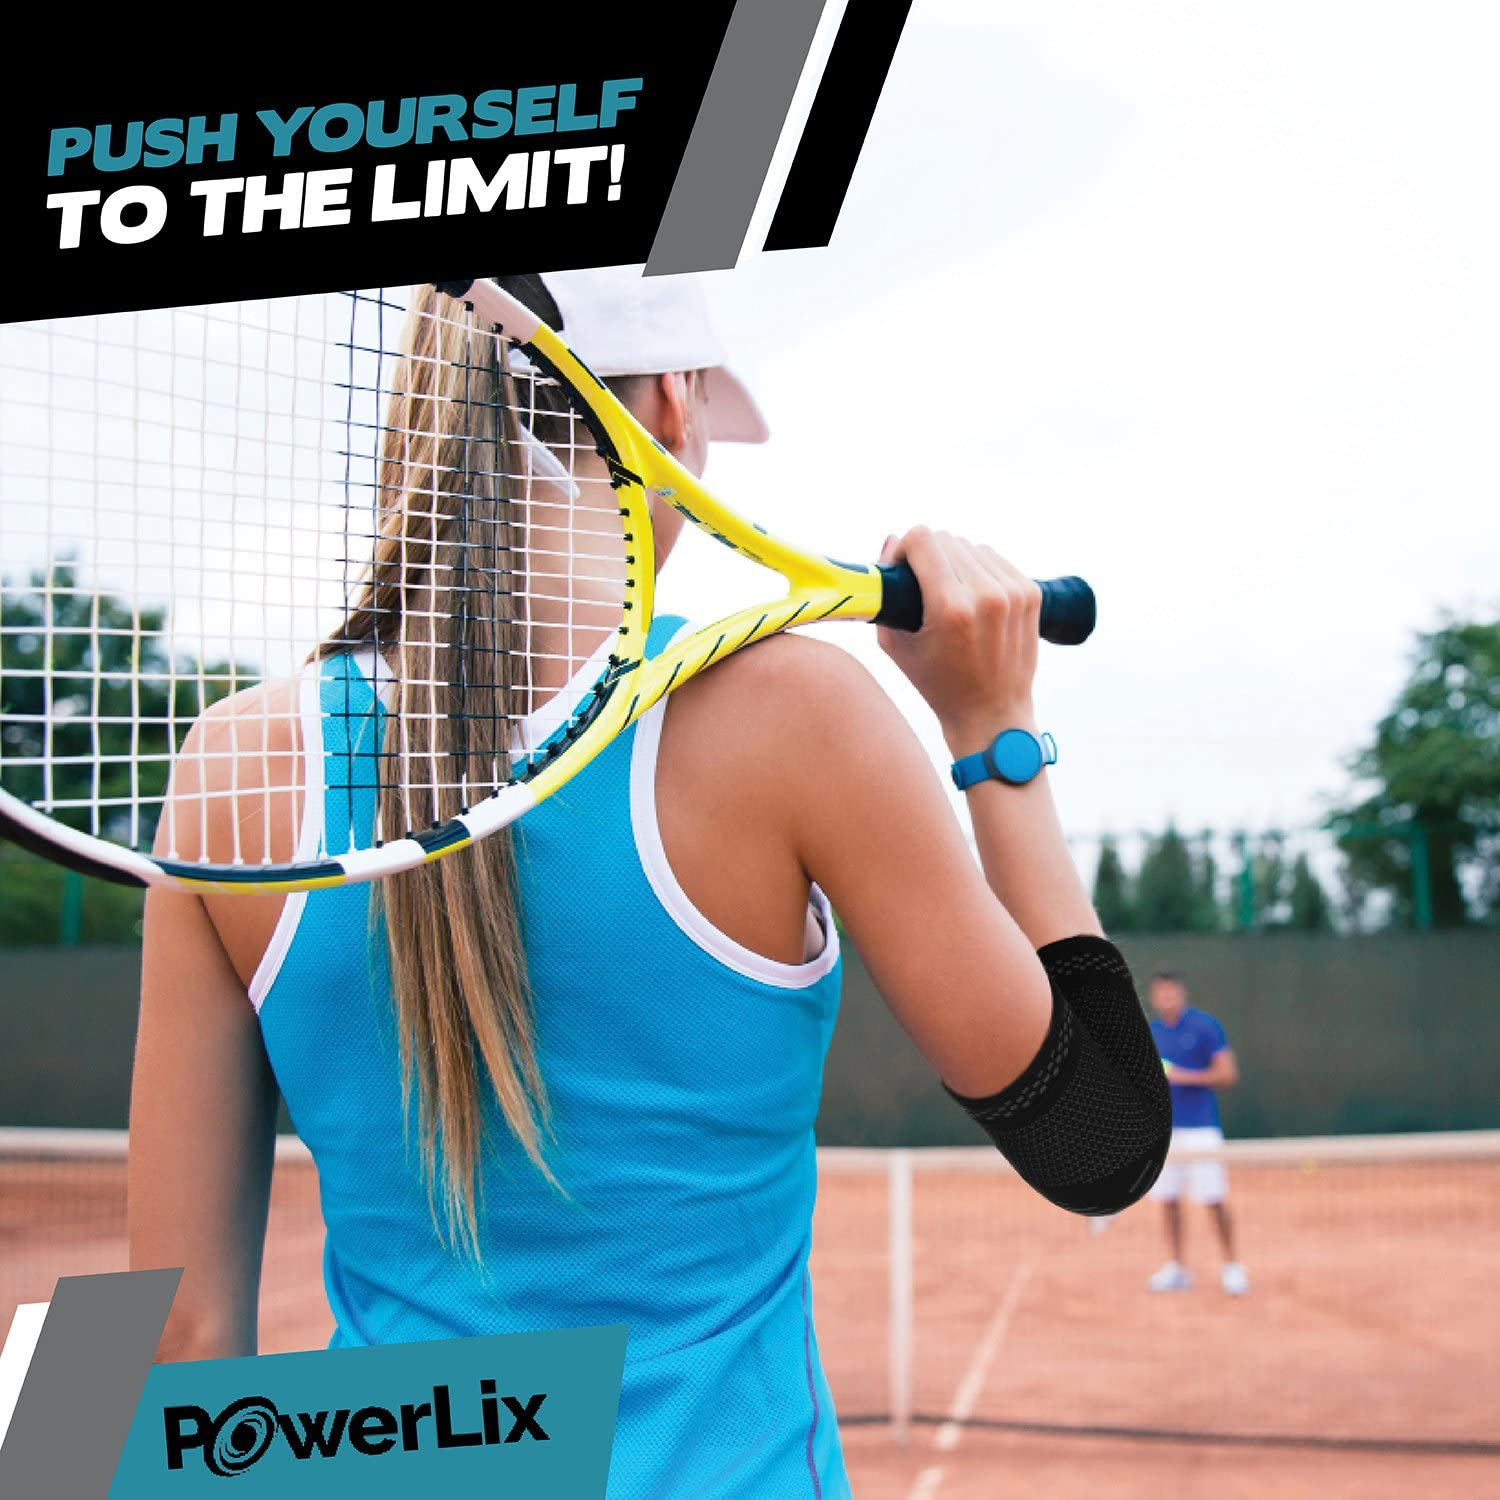 POWERLIX Elbow Brace Compression Support (Pair) - Elbow Sleeve for Tendonitis, Tennis Elbow Brace and Golfers Elbow Treatment, Arthritis, Workouts, Weightlifting – Reduce Elbow Pain: Sports & Outdoors